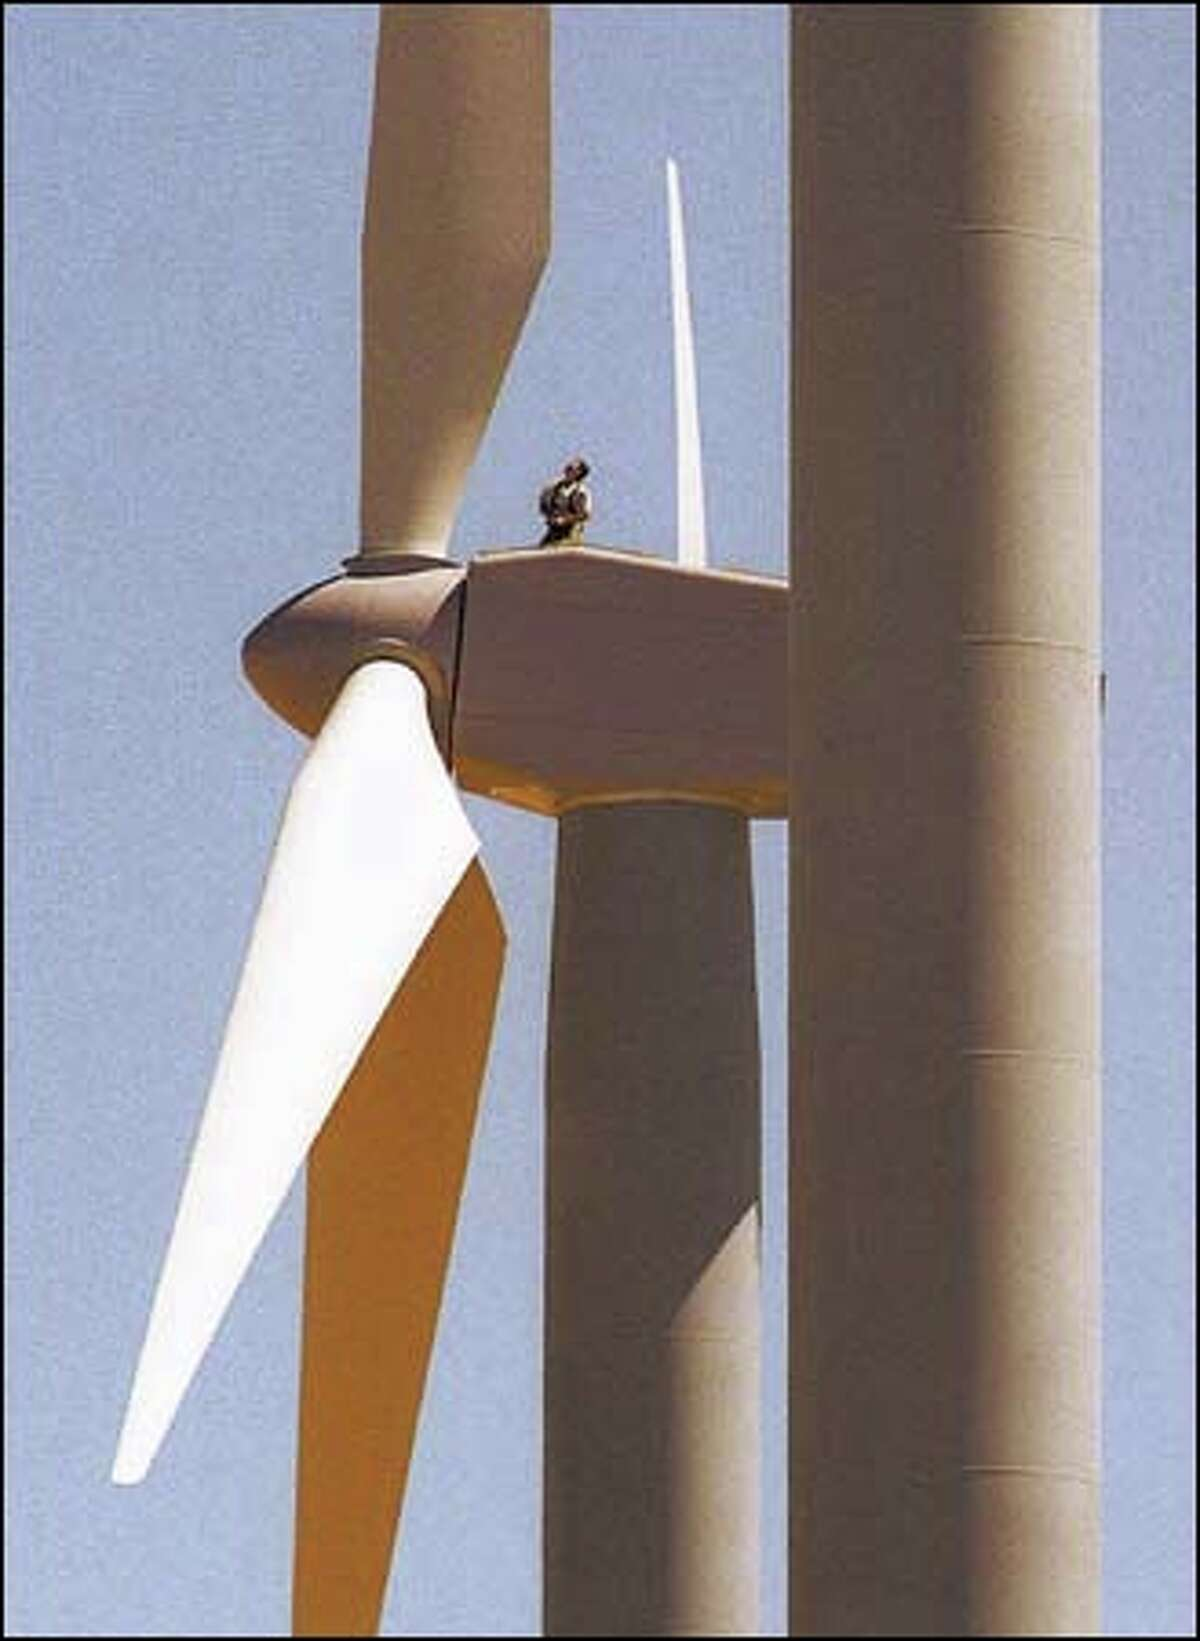 A tethered worker at FPL Energy's Stateline Wind Project on Hatch Grade near Wallula Junction prepares to make a blade readjustment on a 24-story wind turbine, one of 450 that will produce energy at the site.